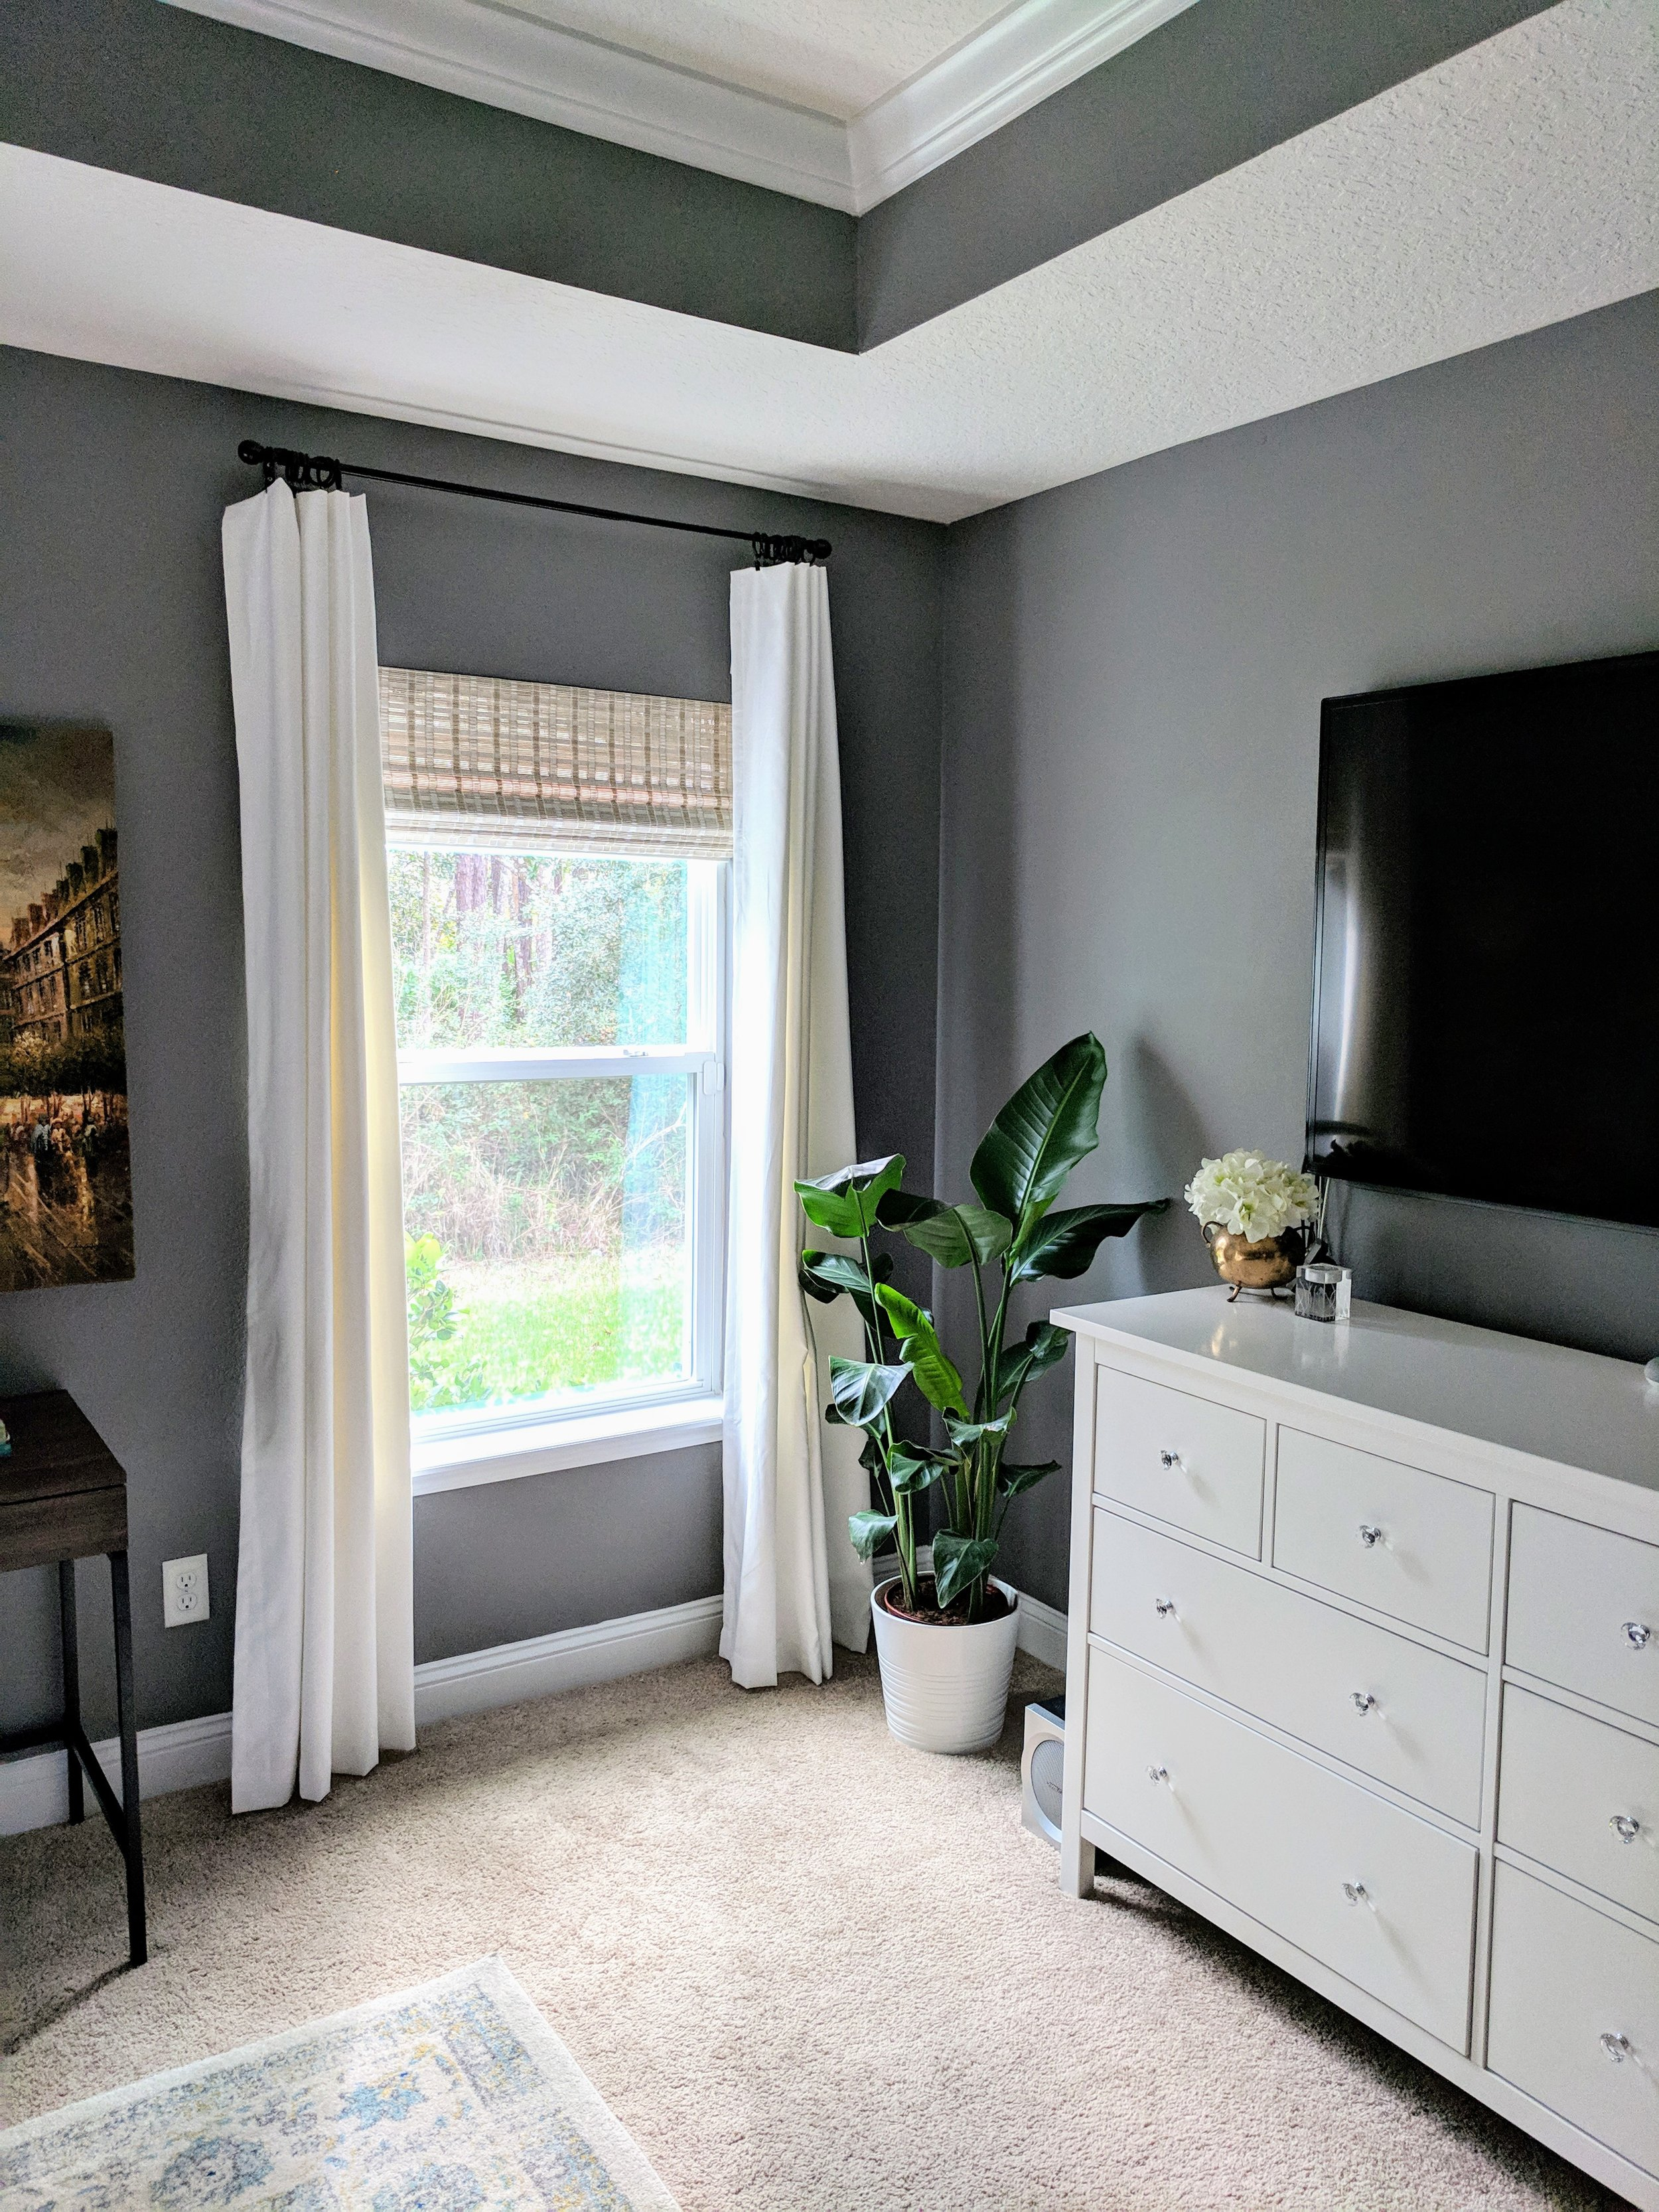 AFTER: Hanging curtains at the right height.